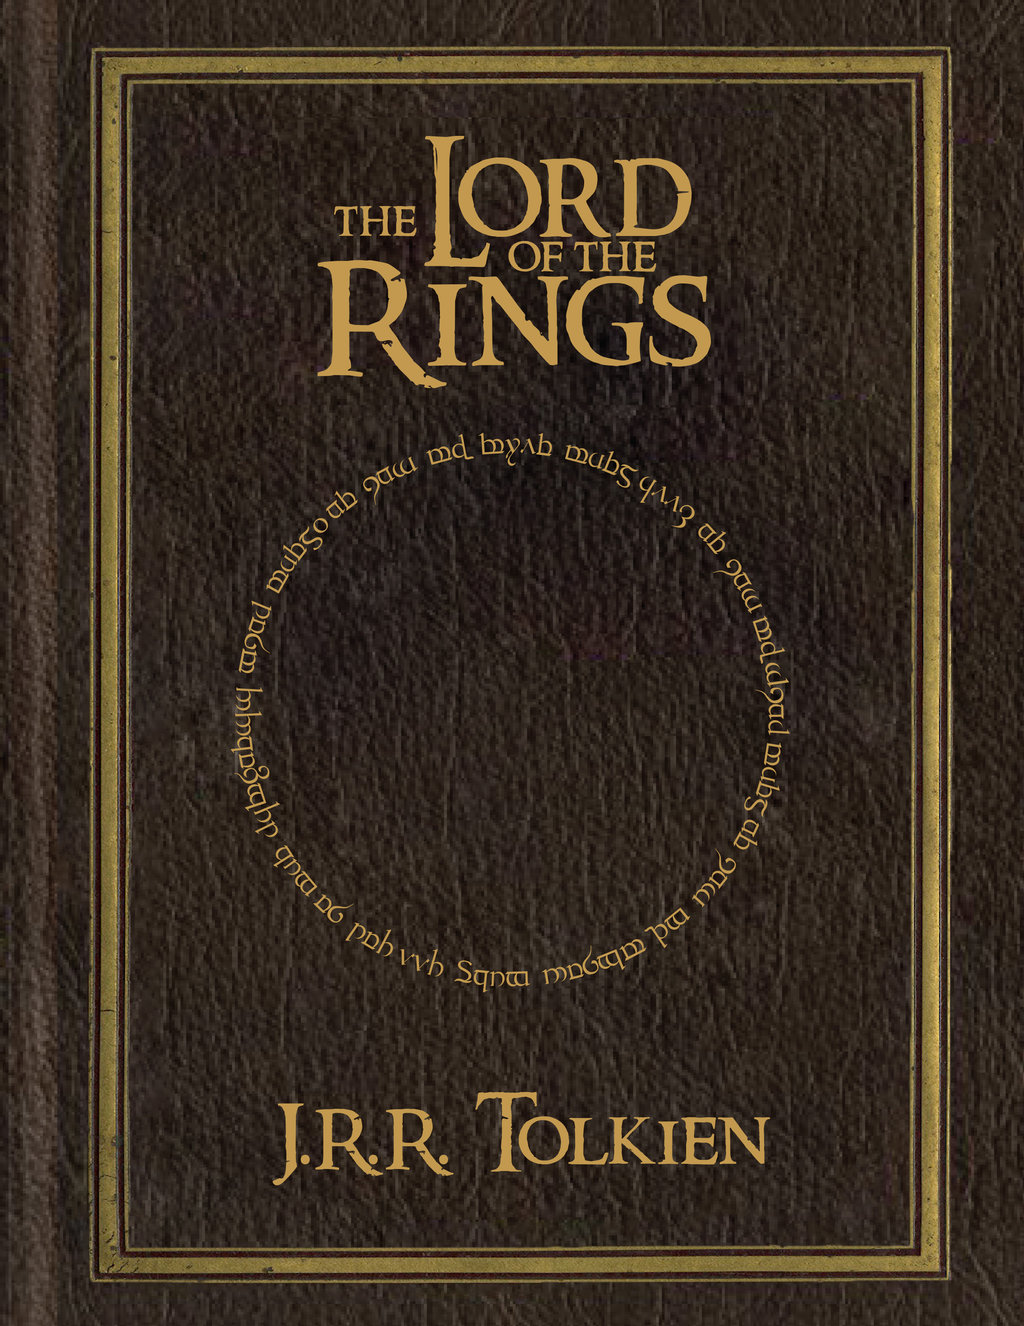 The fall of the numenor in jrr tolkiens fantasy novel